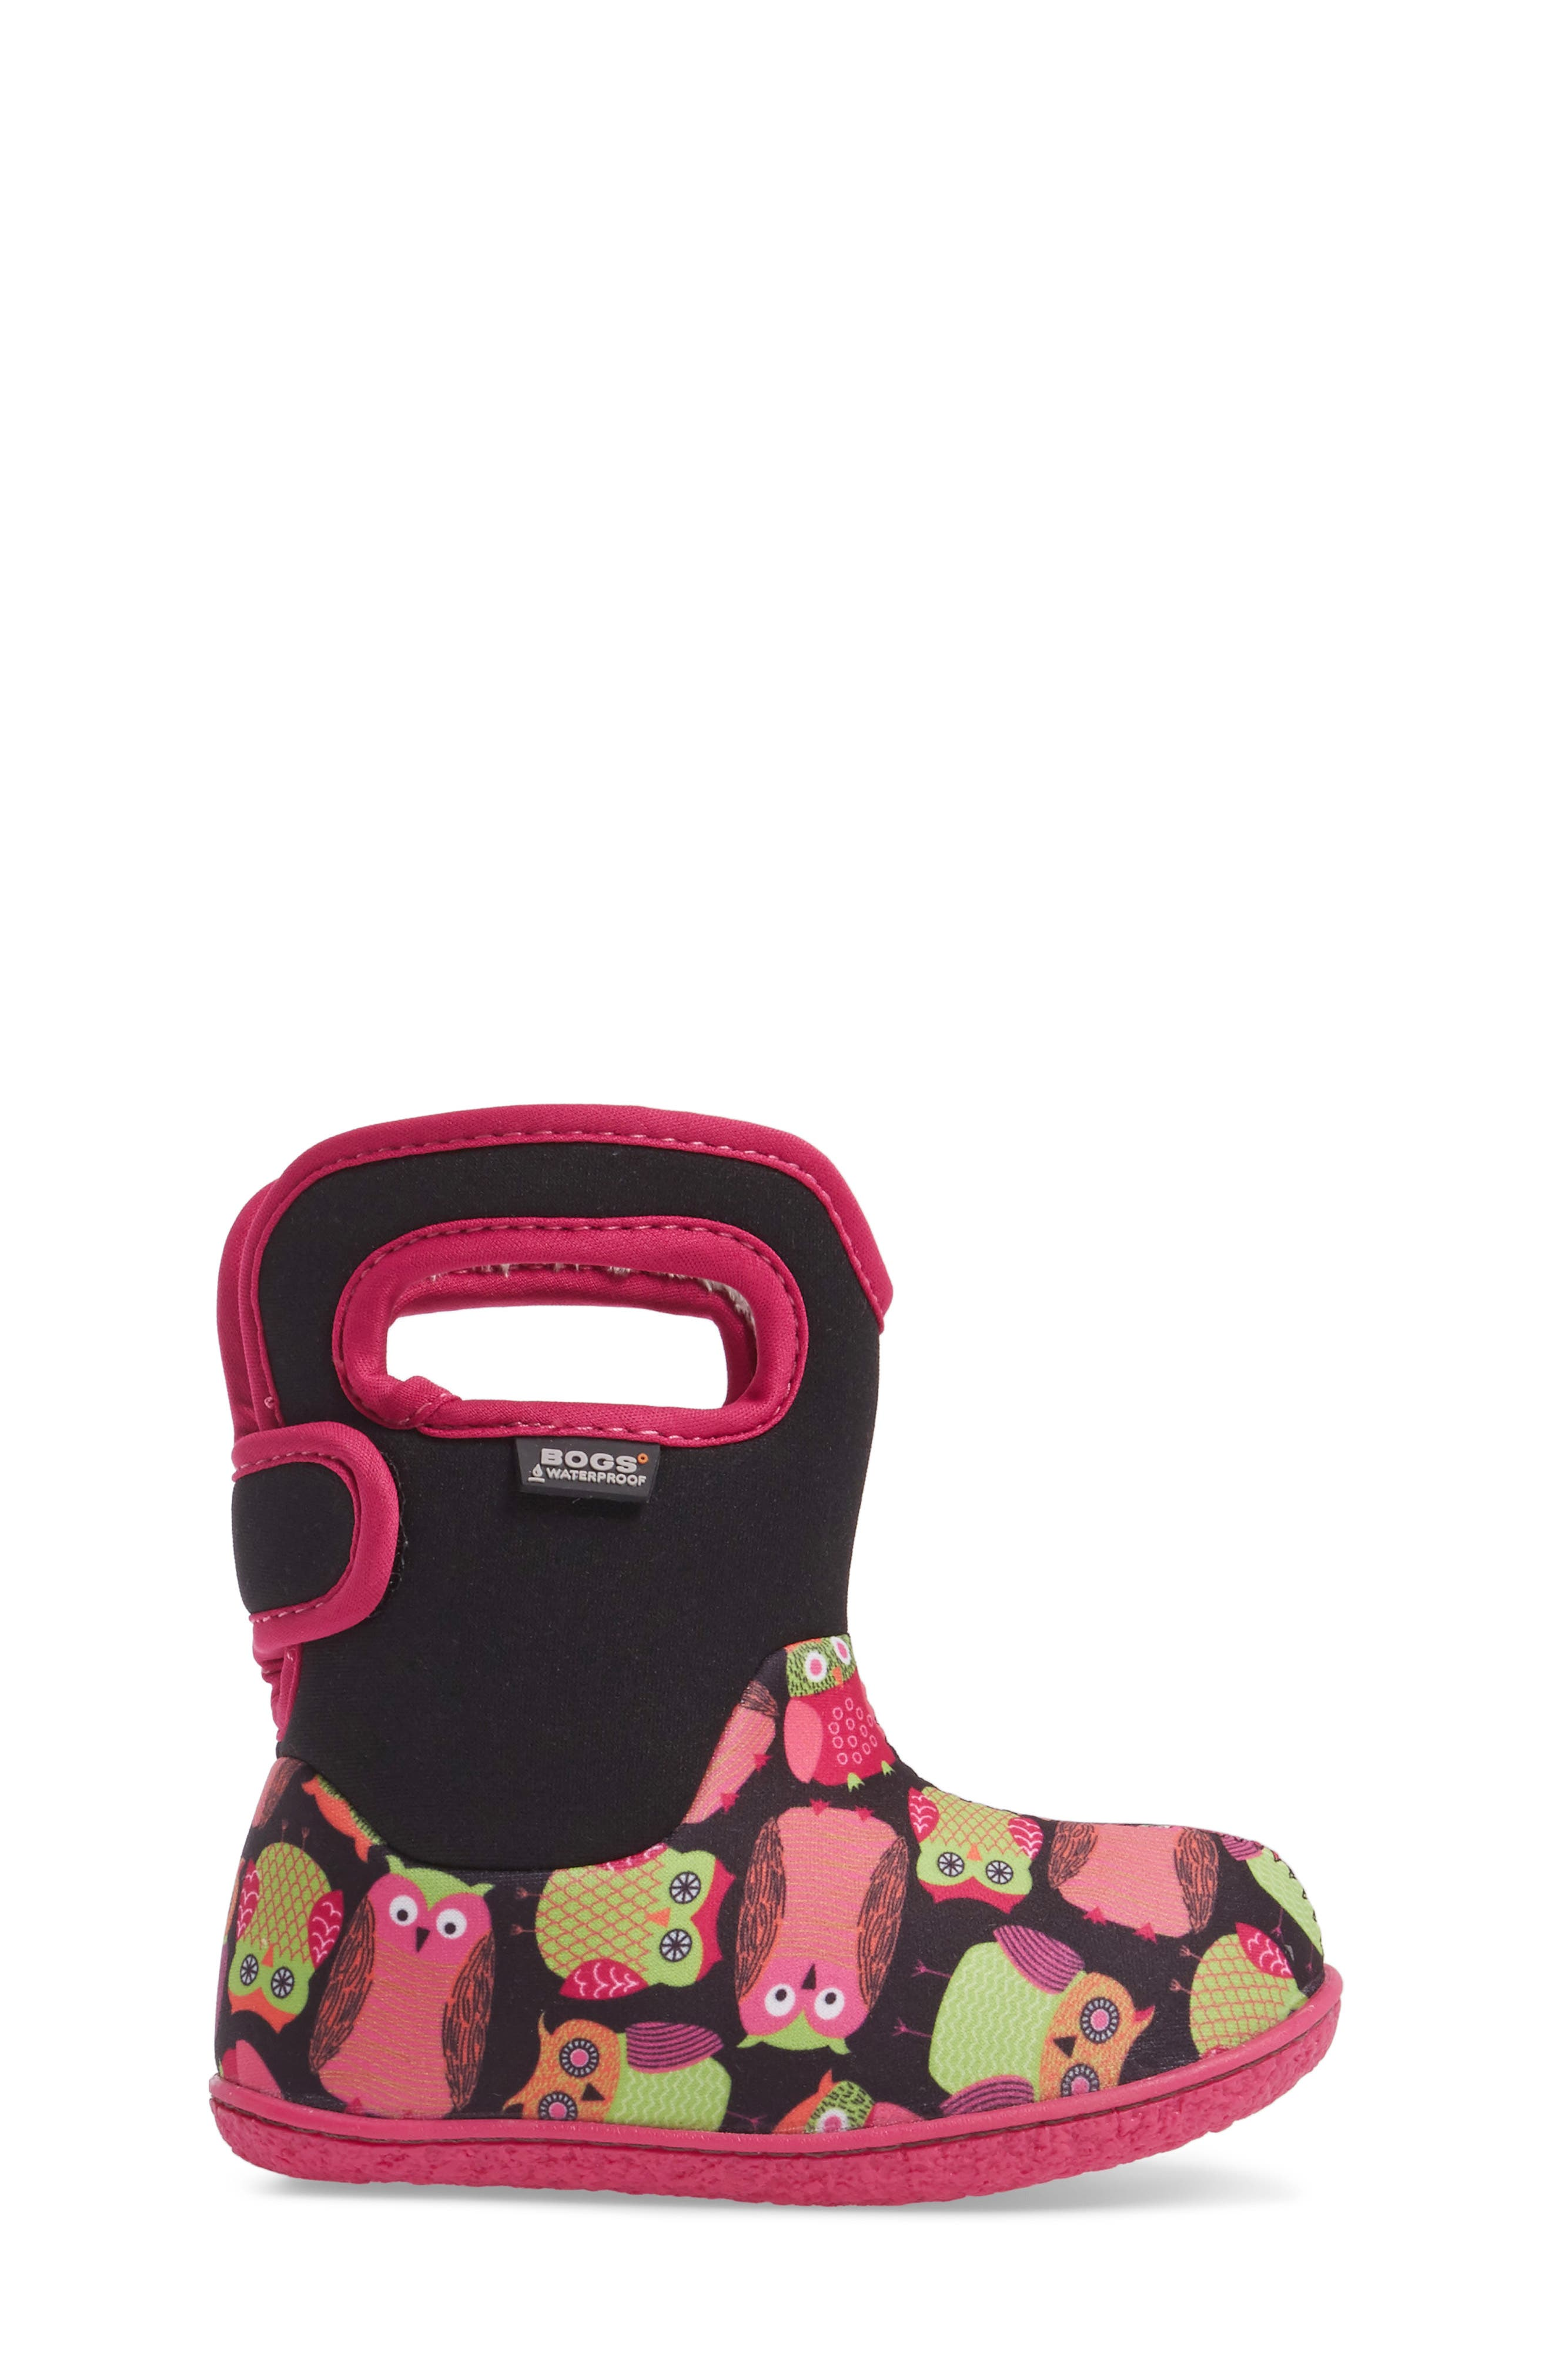 Alternate Image 3  - Bogs Baby Bogs Classic Owls Insulated Waterproof Boot (Baby, Walker & Toddler)